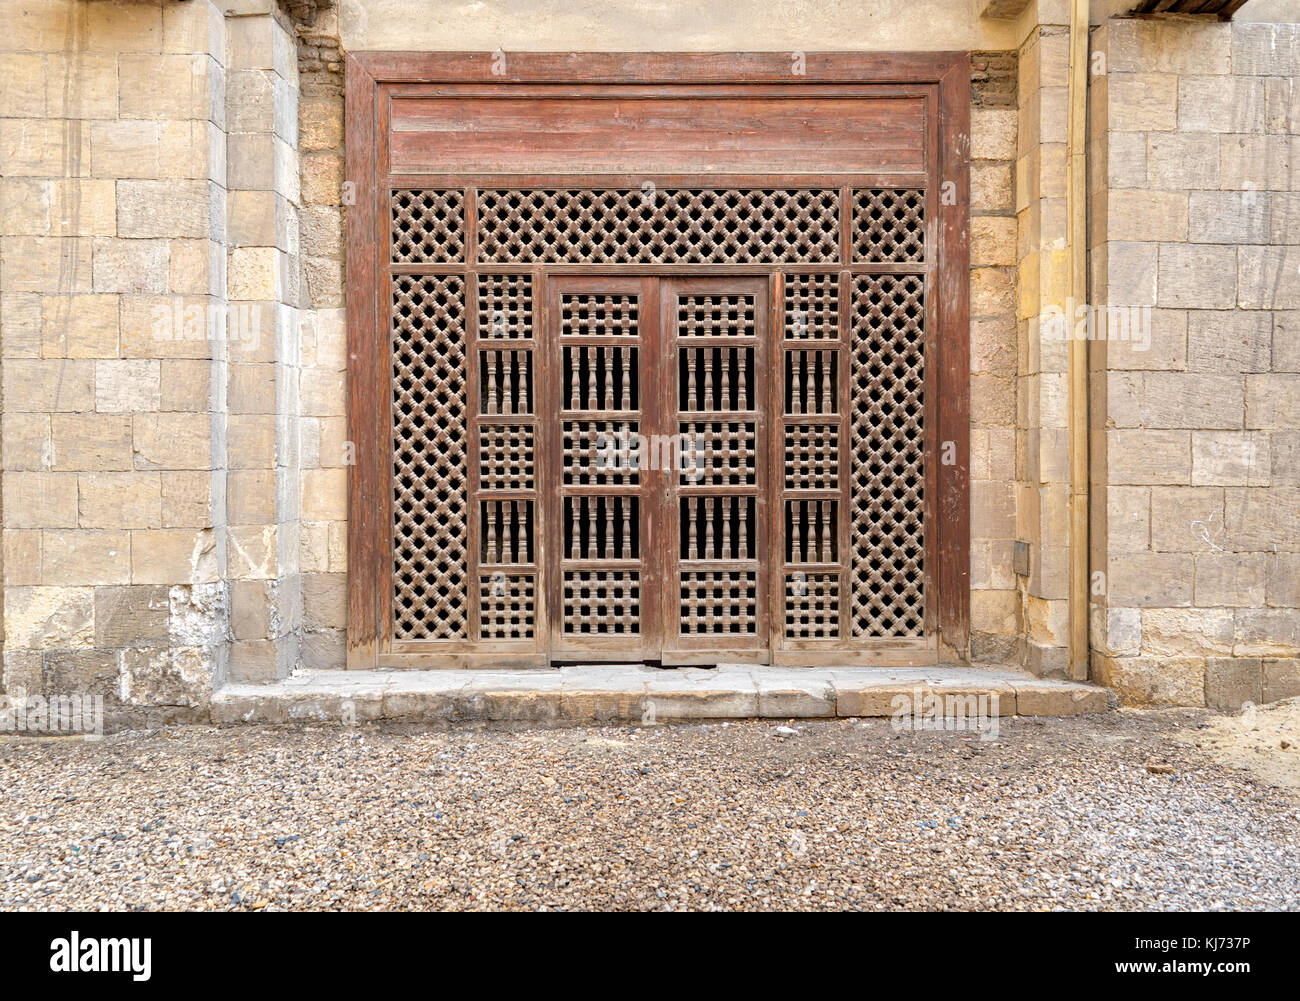 Wooden ornate door over stone brick wall, Old Cairo, Egypt - Stock Image